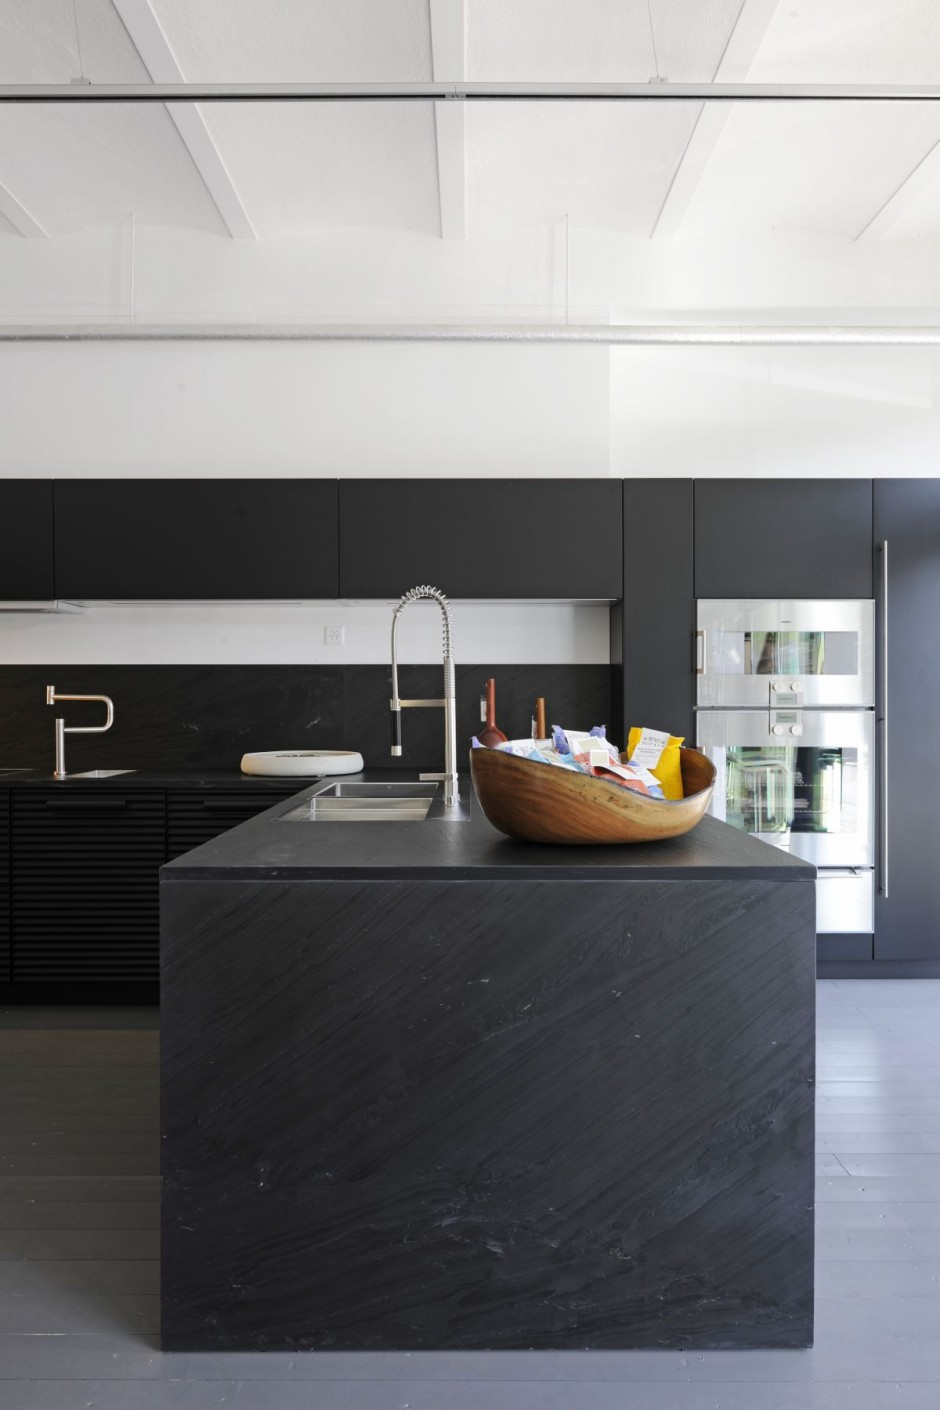 Sc 070111 02 contemporist for Kitchen design zurich